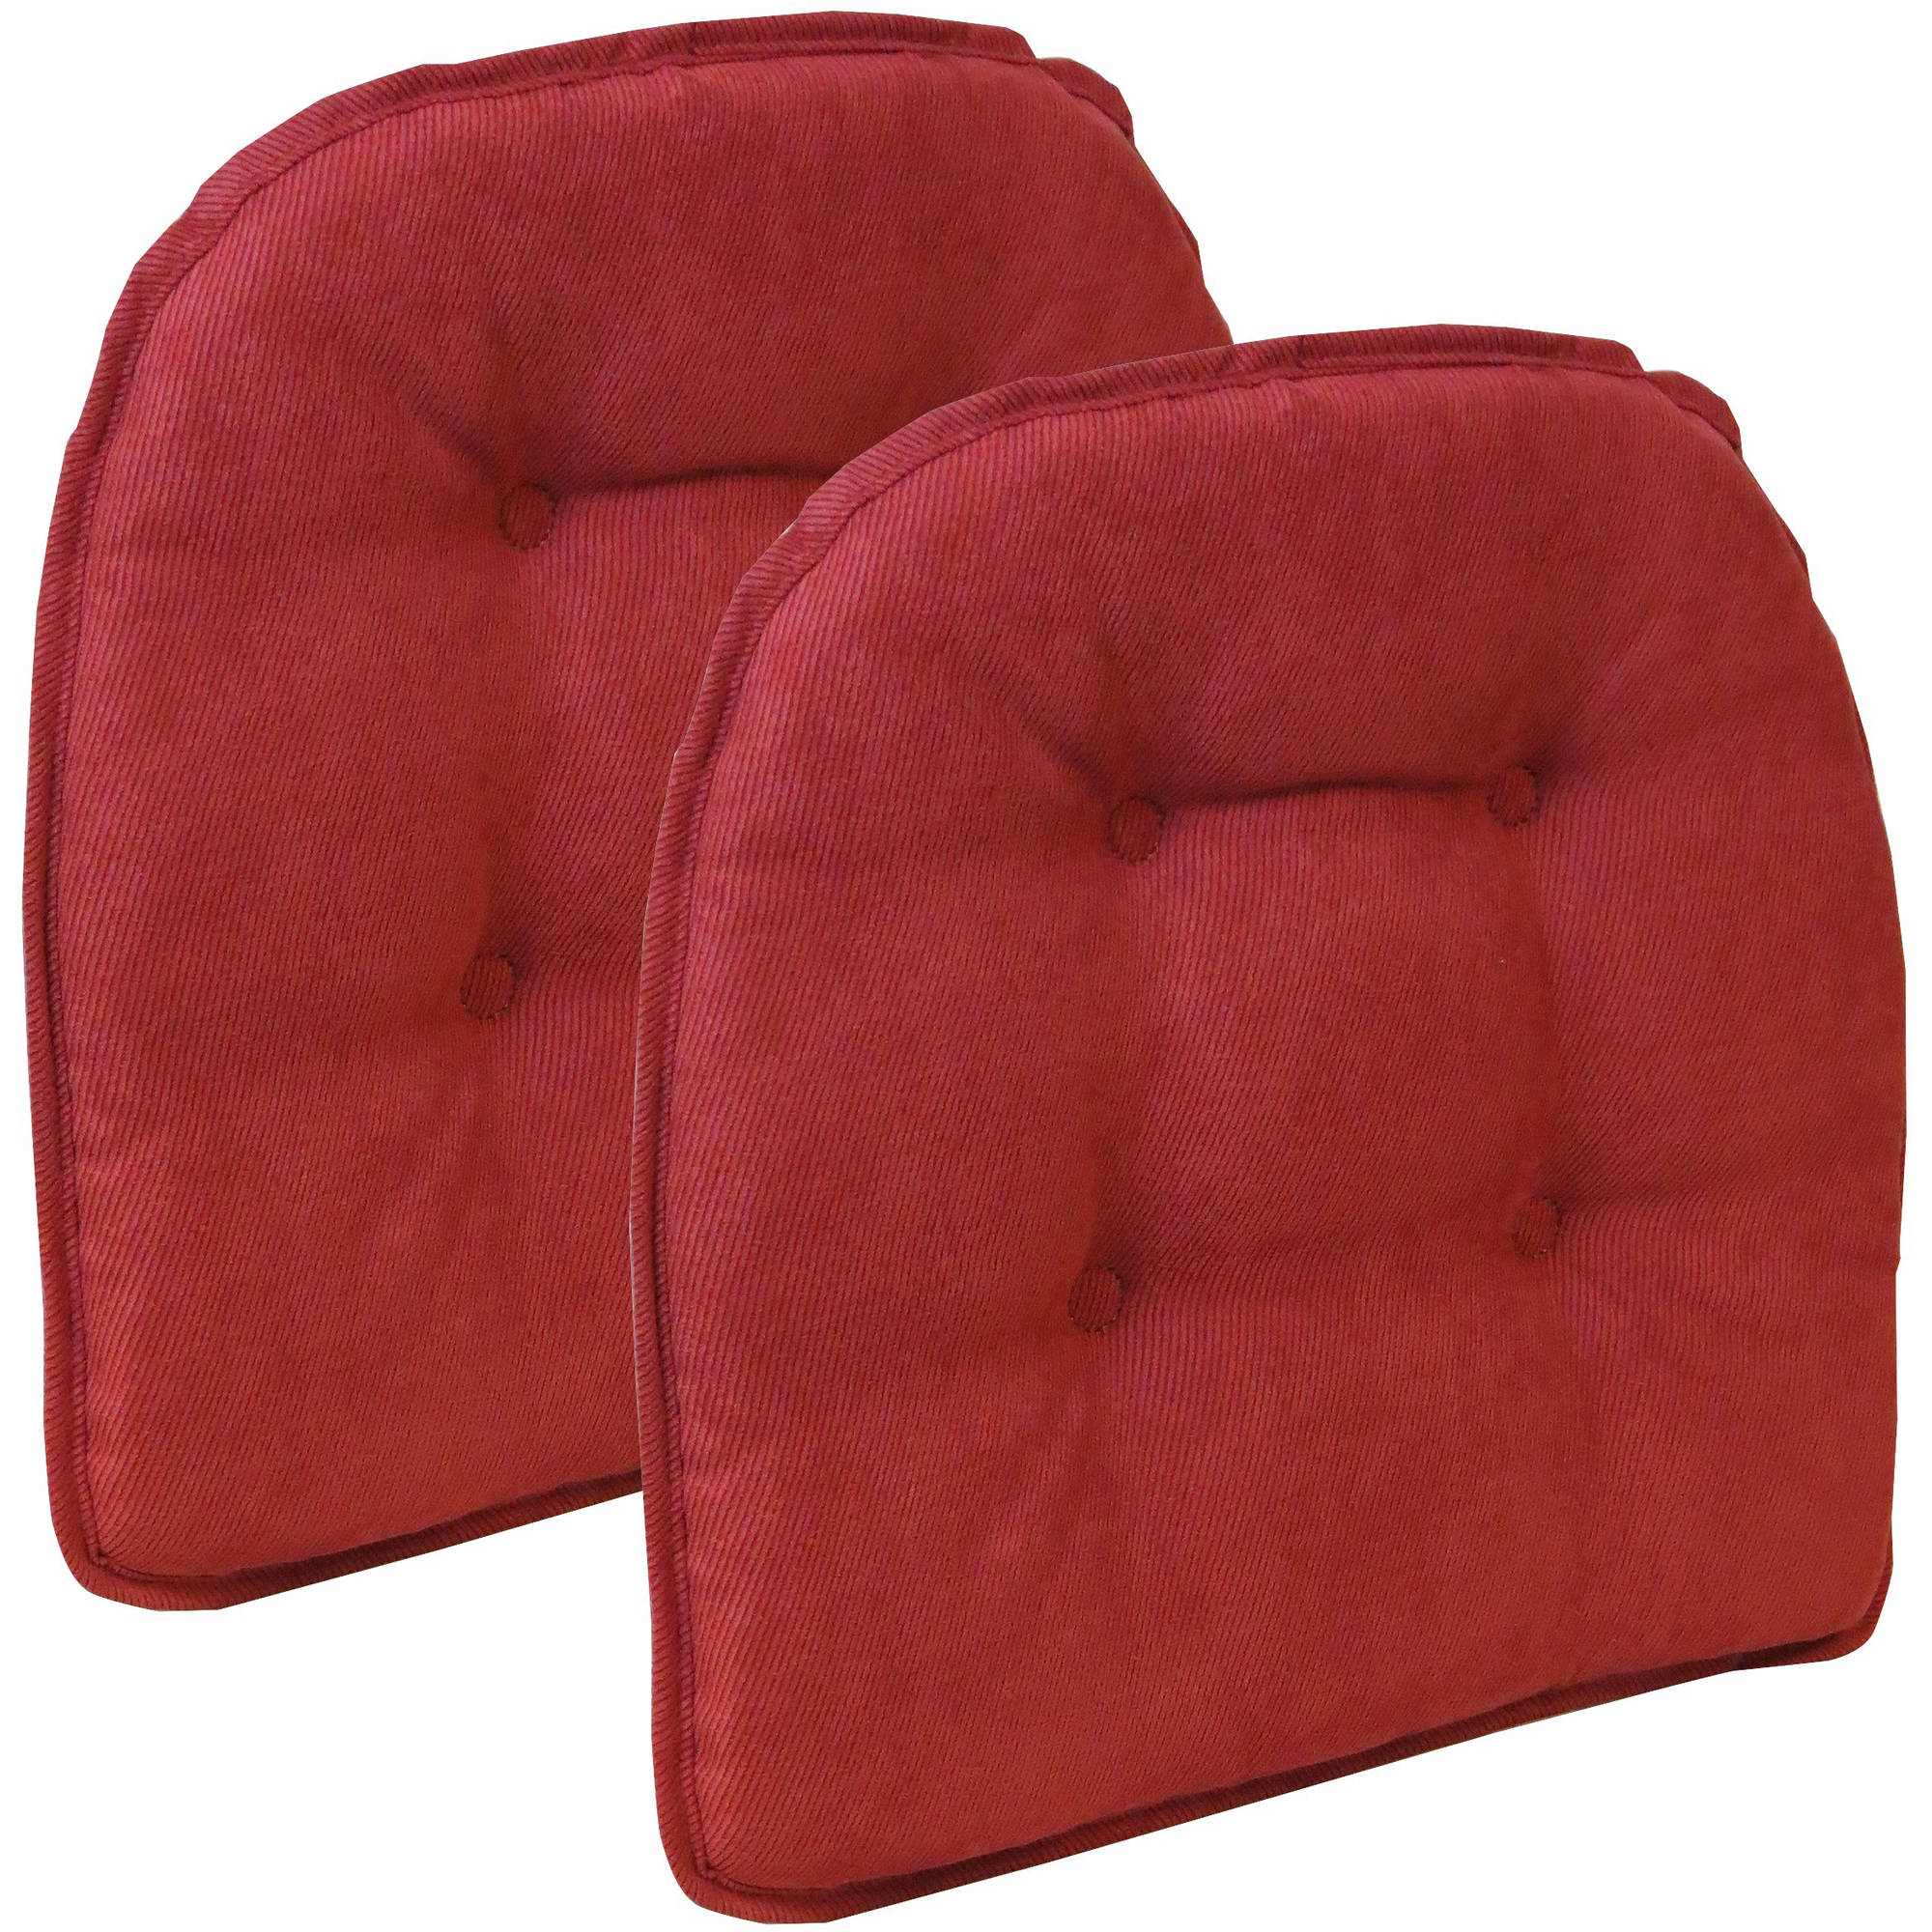 "Gripper Non Slip 15"" x 16"" Nouveau Tufted Chair Cushions, Set of 2"